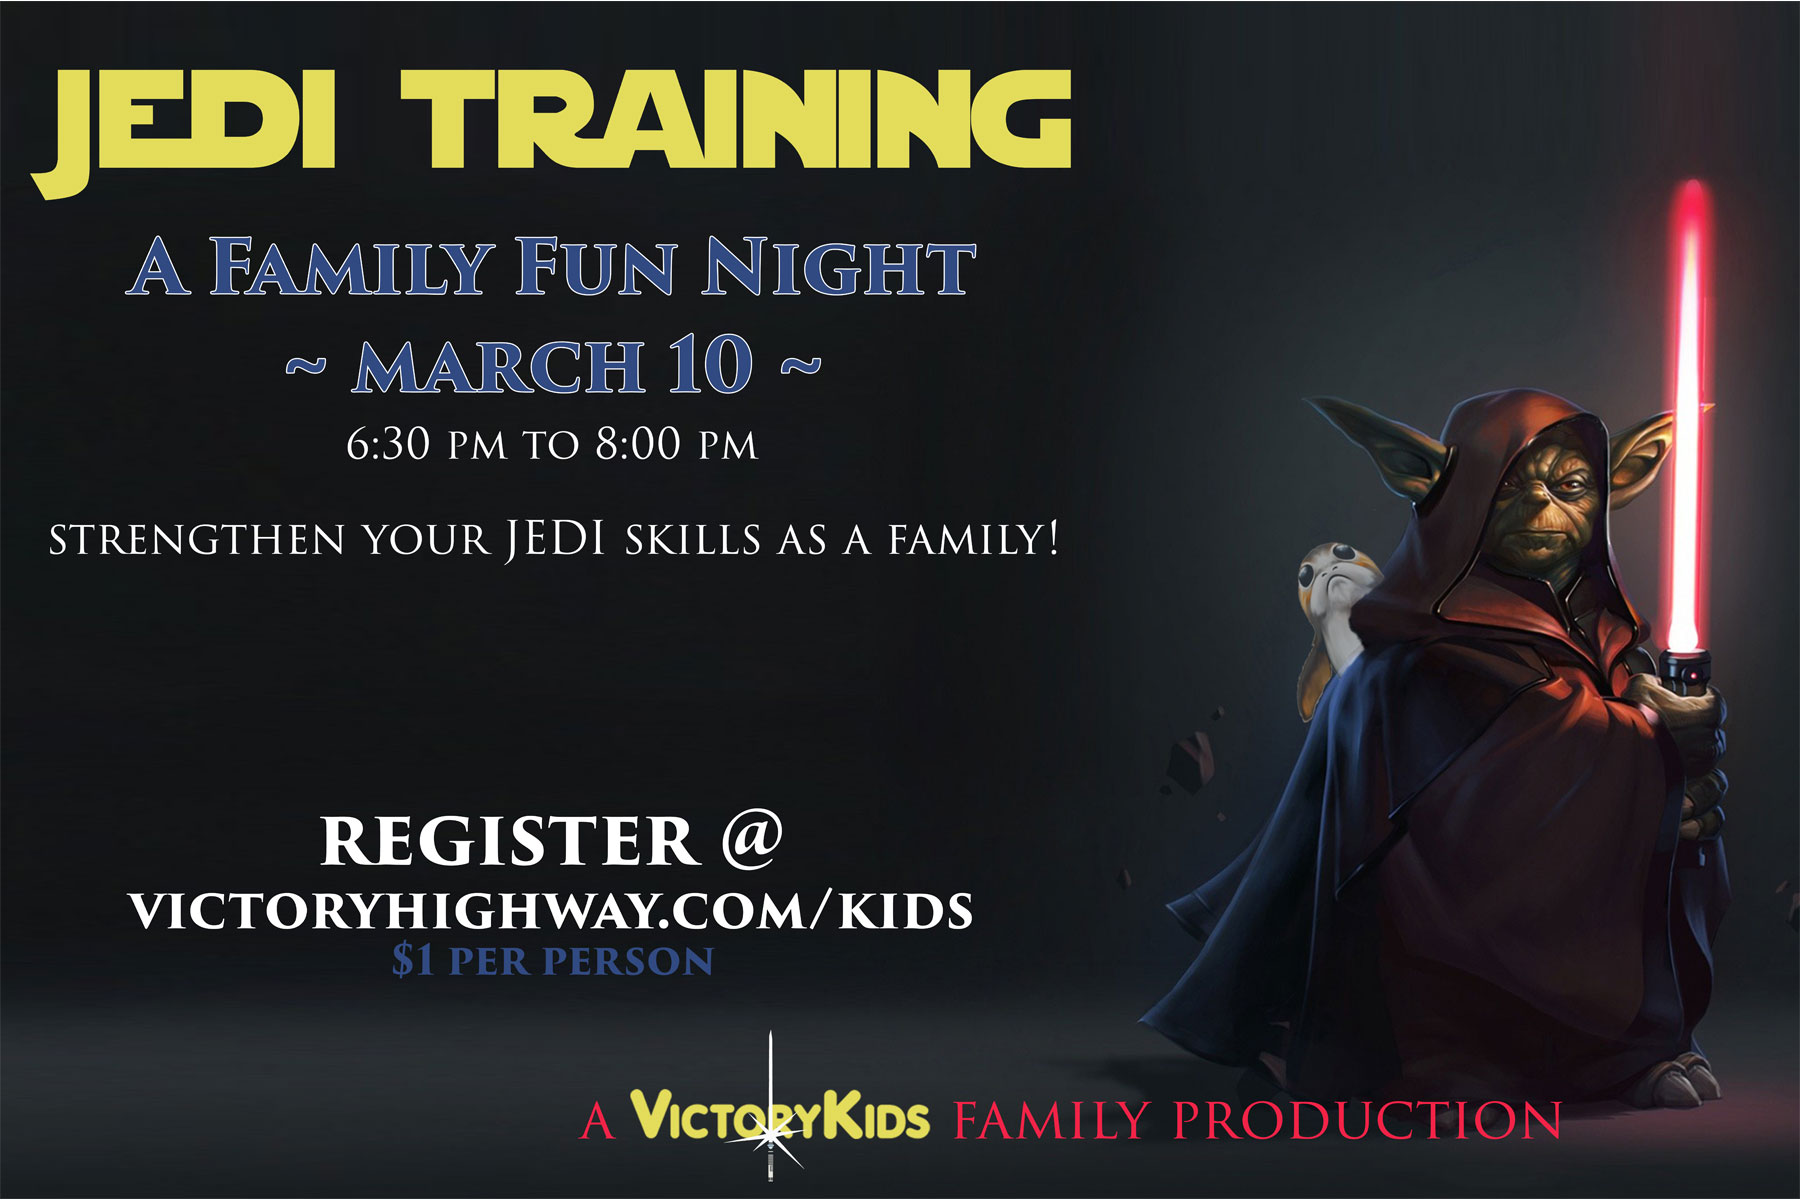 Jedi training frontside post card graphic